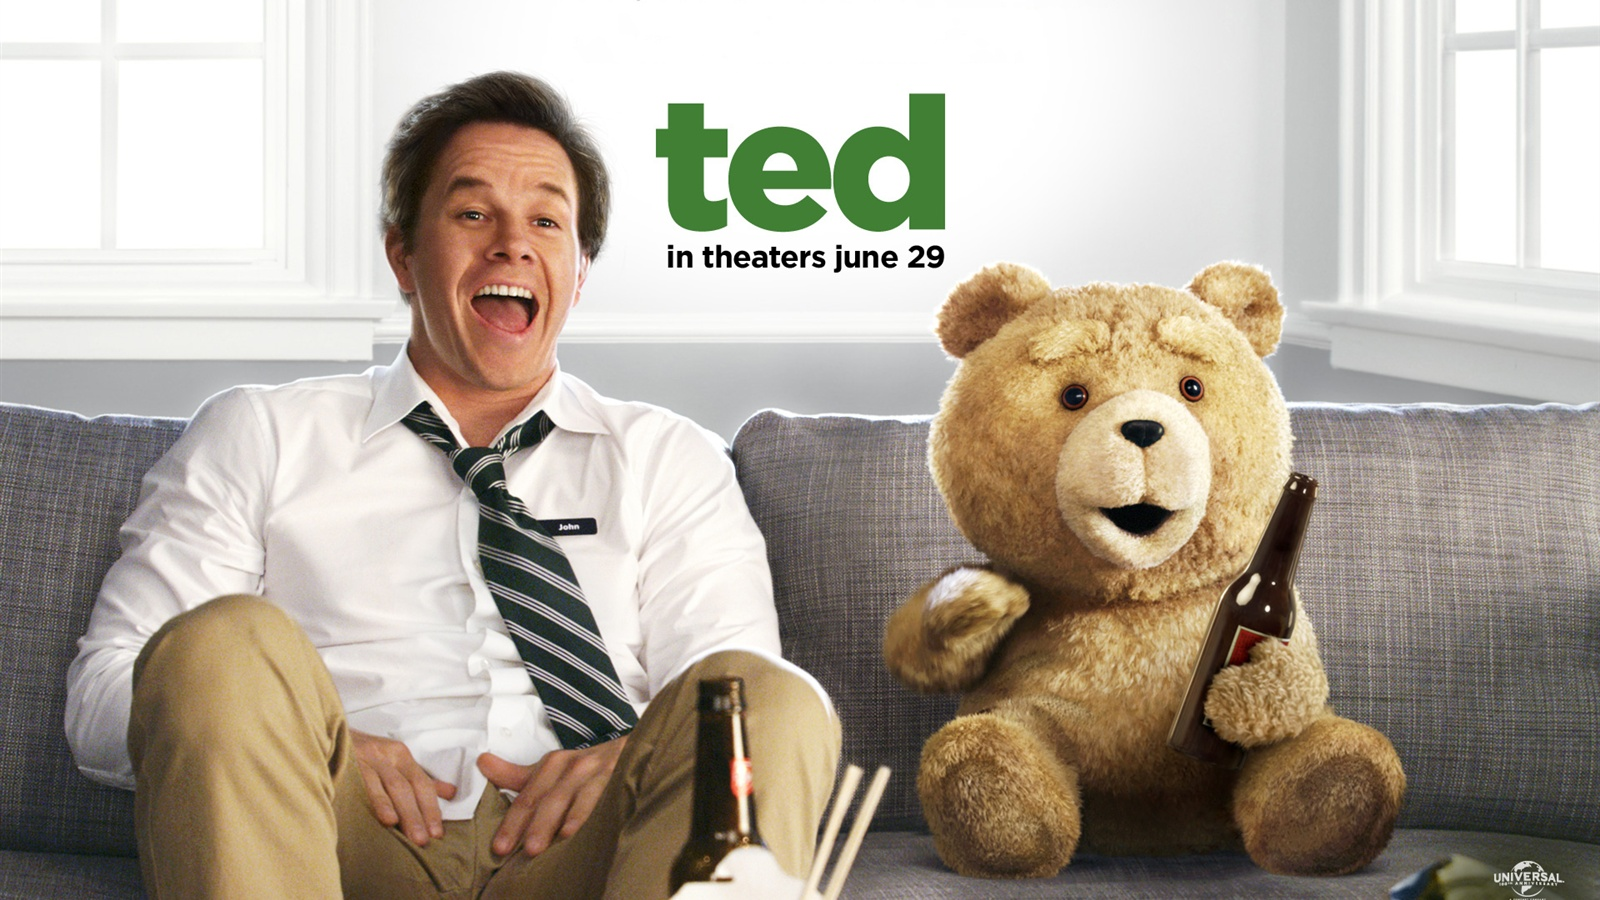 The Best 100 Hd And Qhd Wallpapers From 2015 Works For: Ted Película 2012 Fondos De Pantalla